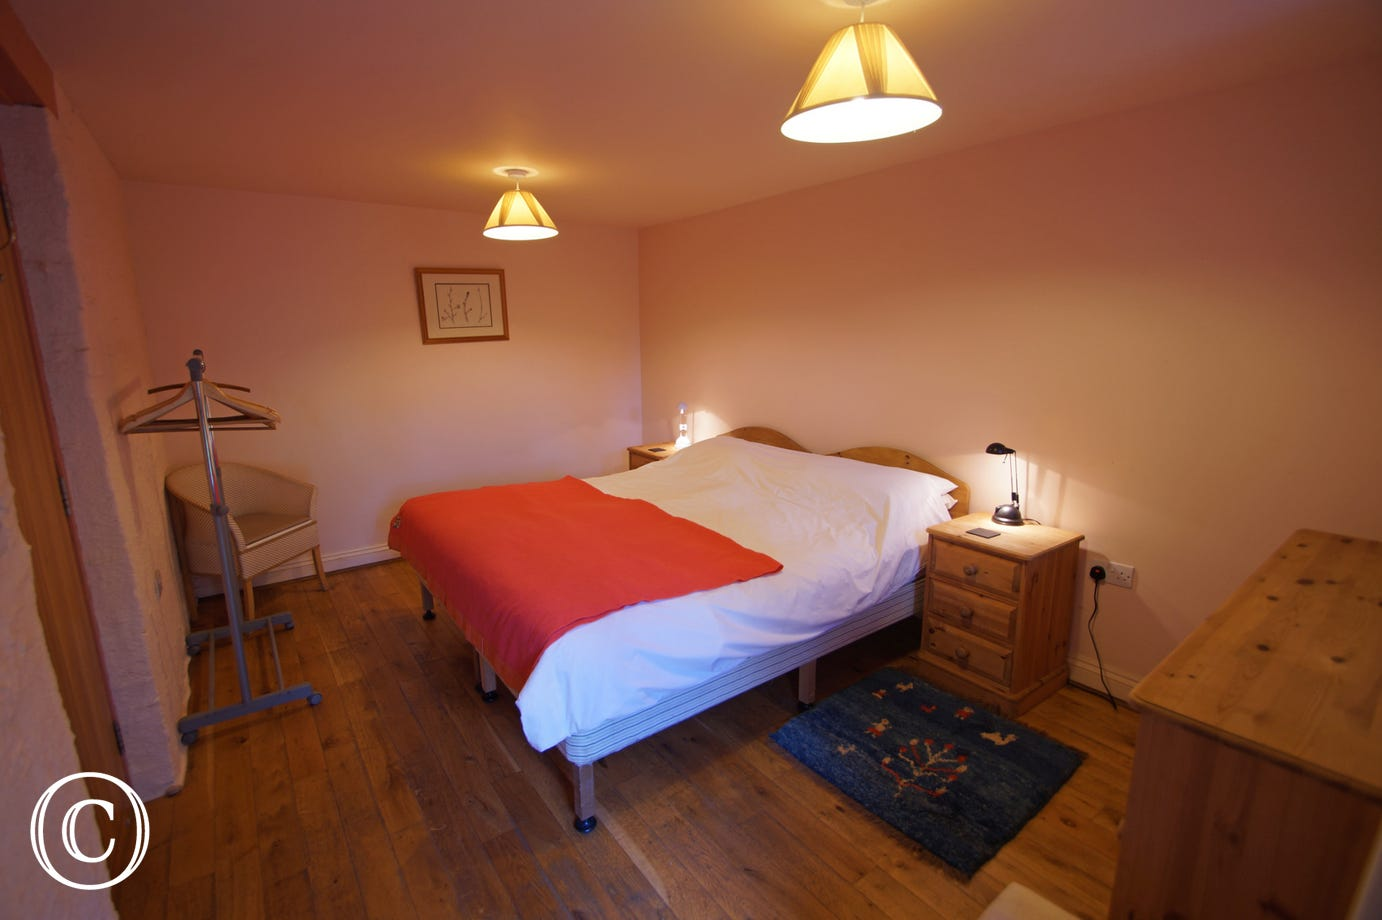 Ground floor bedroom - wheelchair access and underfloor heating